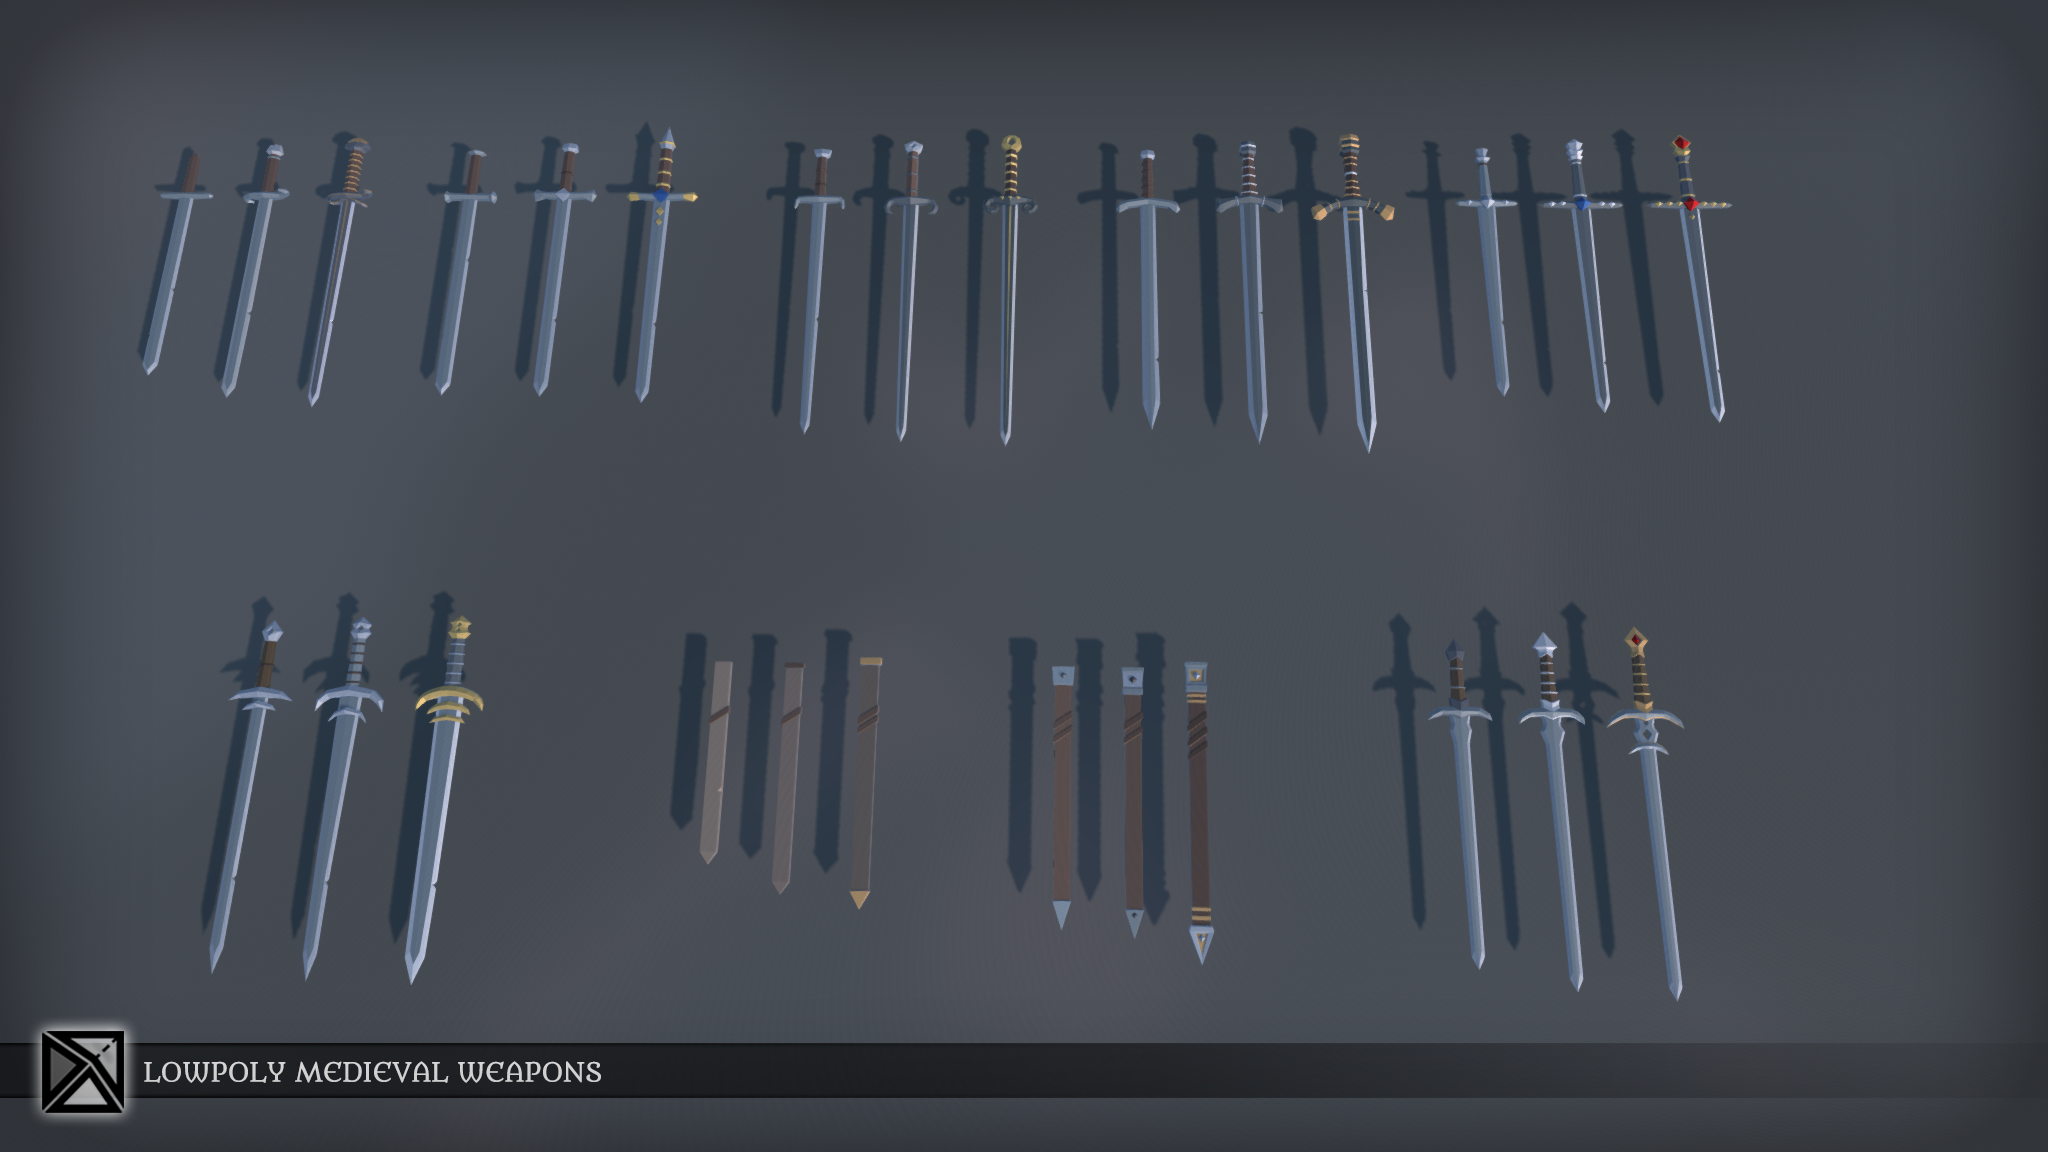 PT_Medieval_Lowpoly_Weapons_Sheath_Sword.png